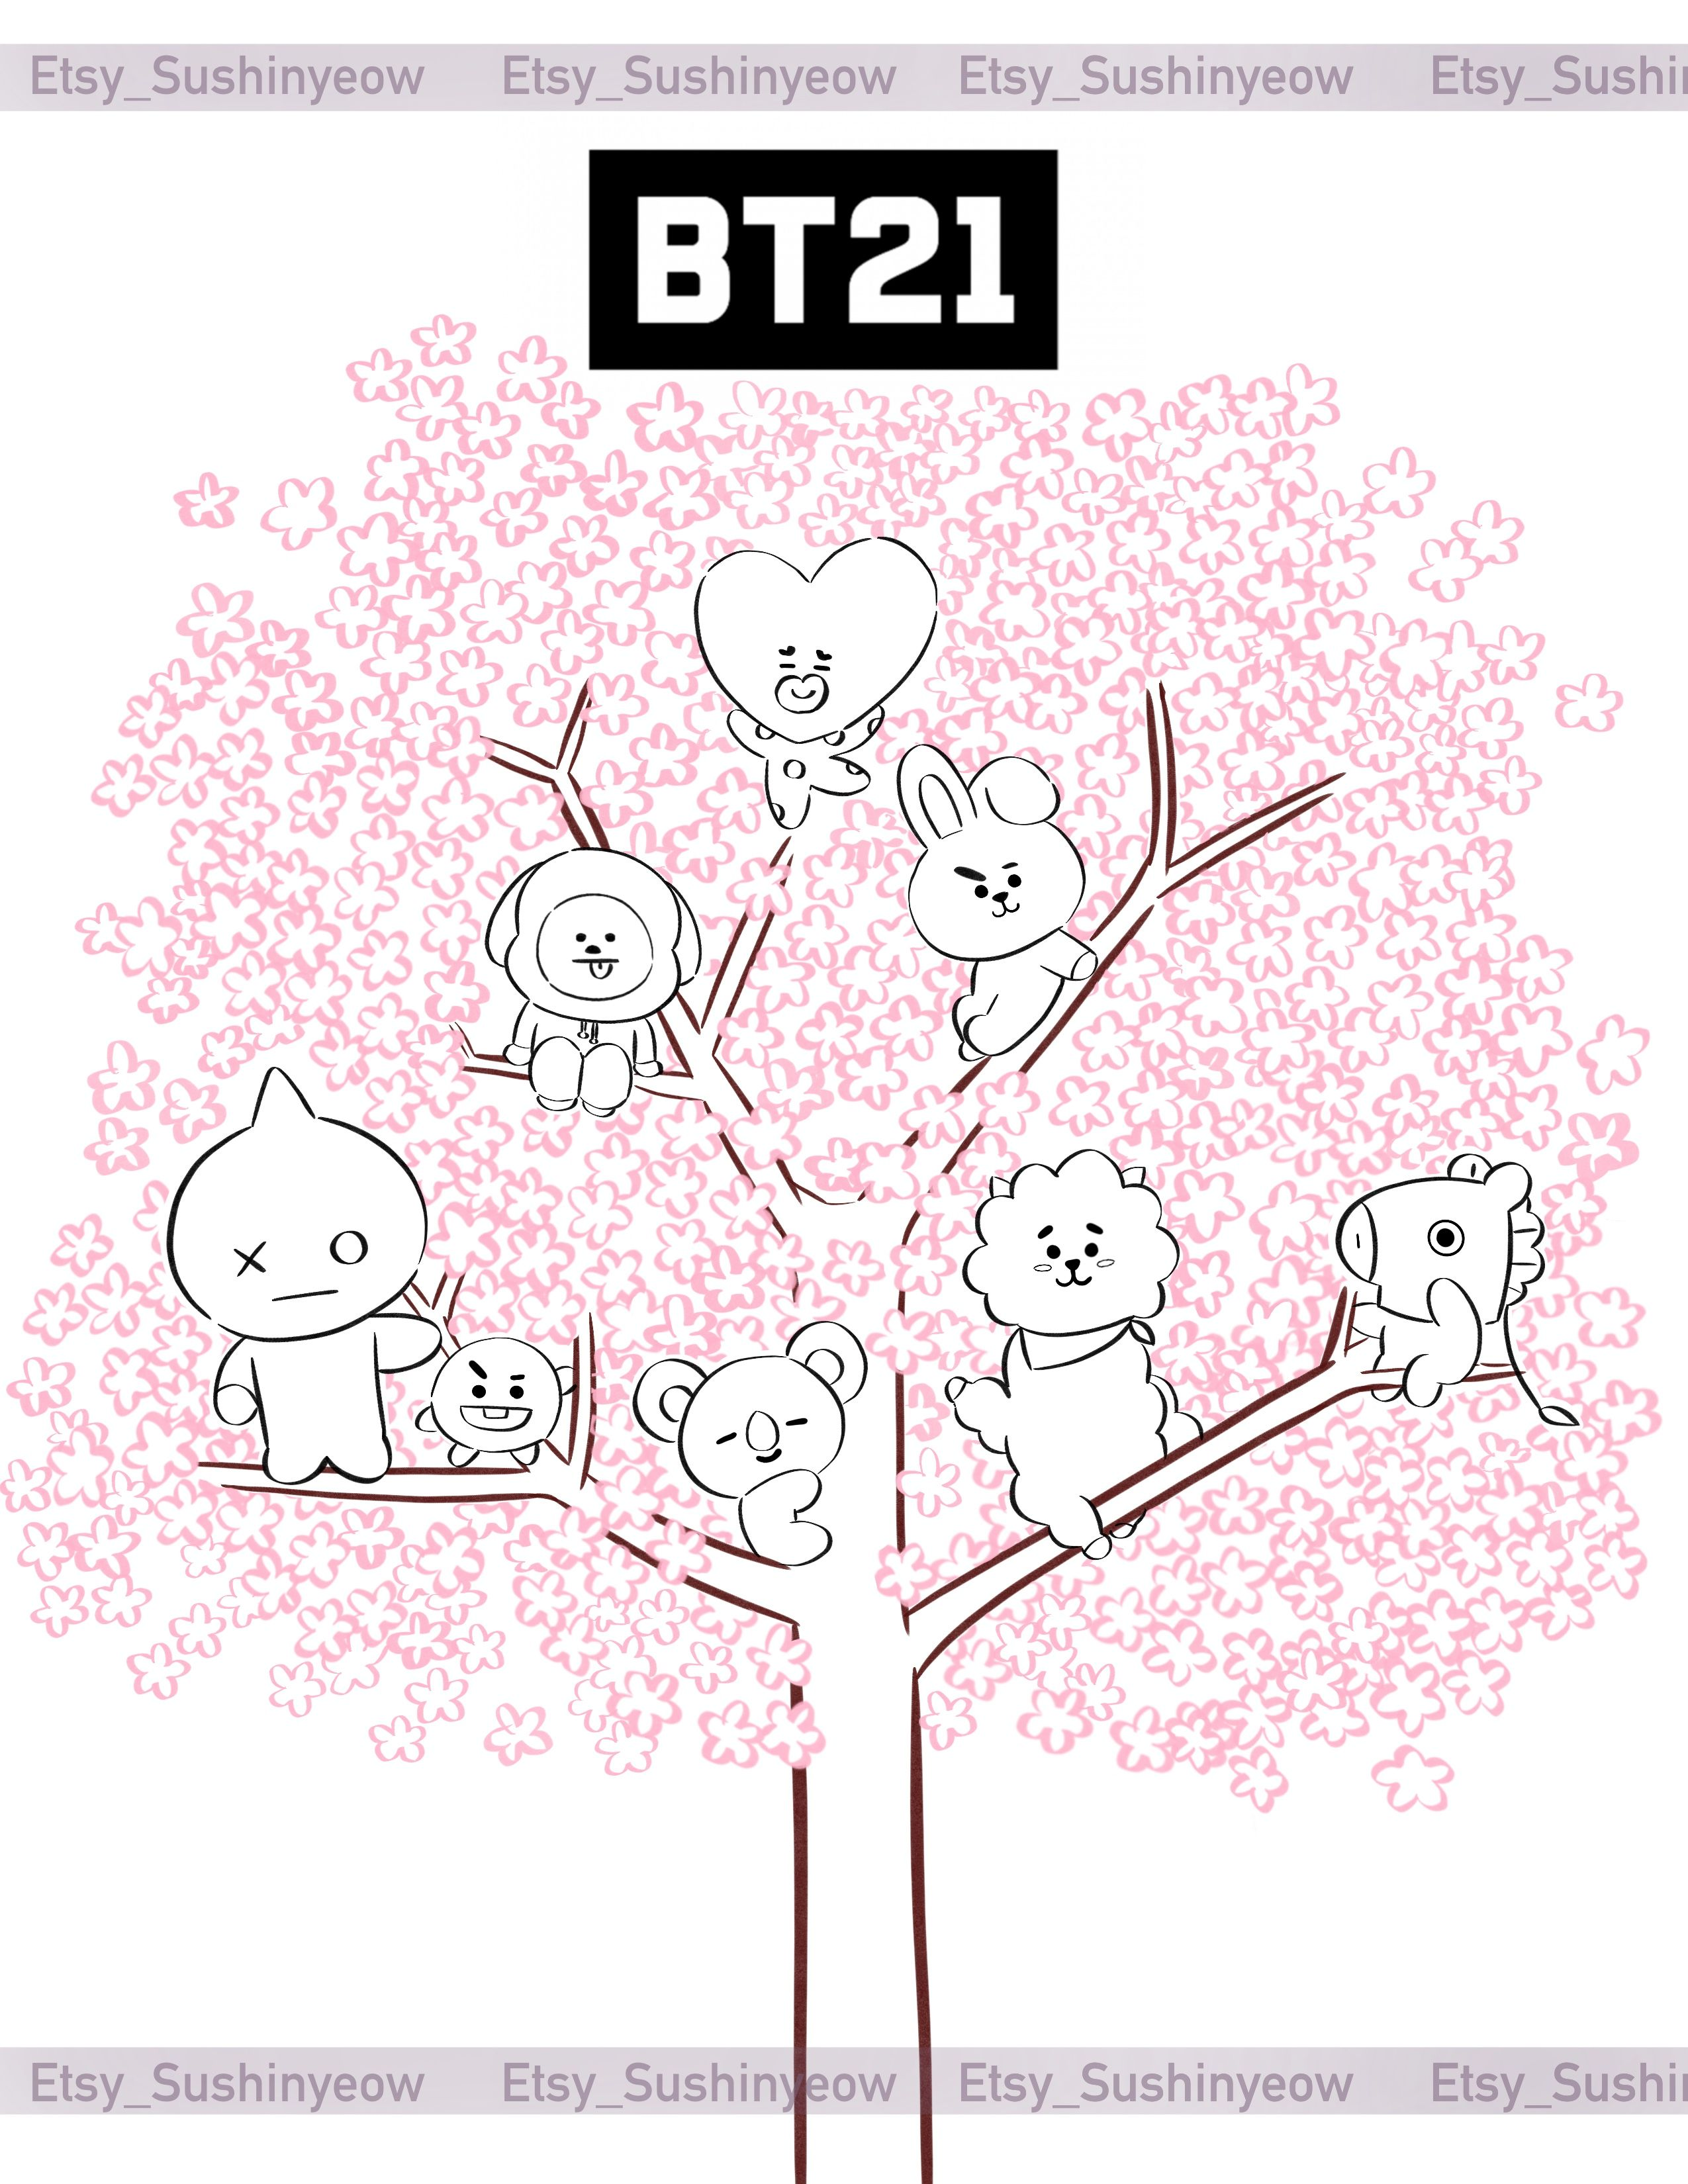 Bt21 Bts Printable Coloring Book Pagesbtscoloring Book Page Etsy Coloring Books Printable Coloring Book Cute Coloring Pages